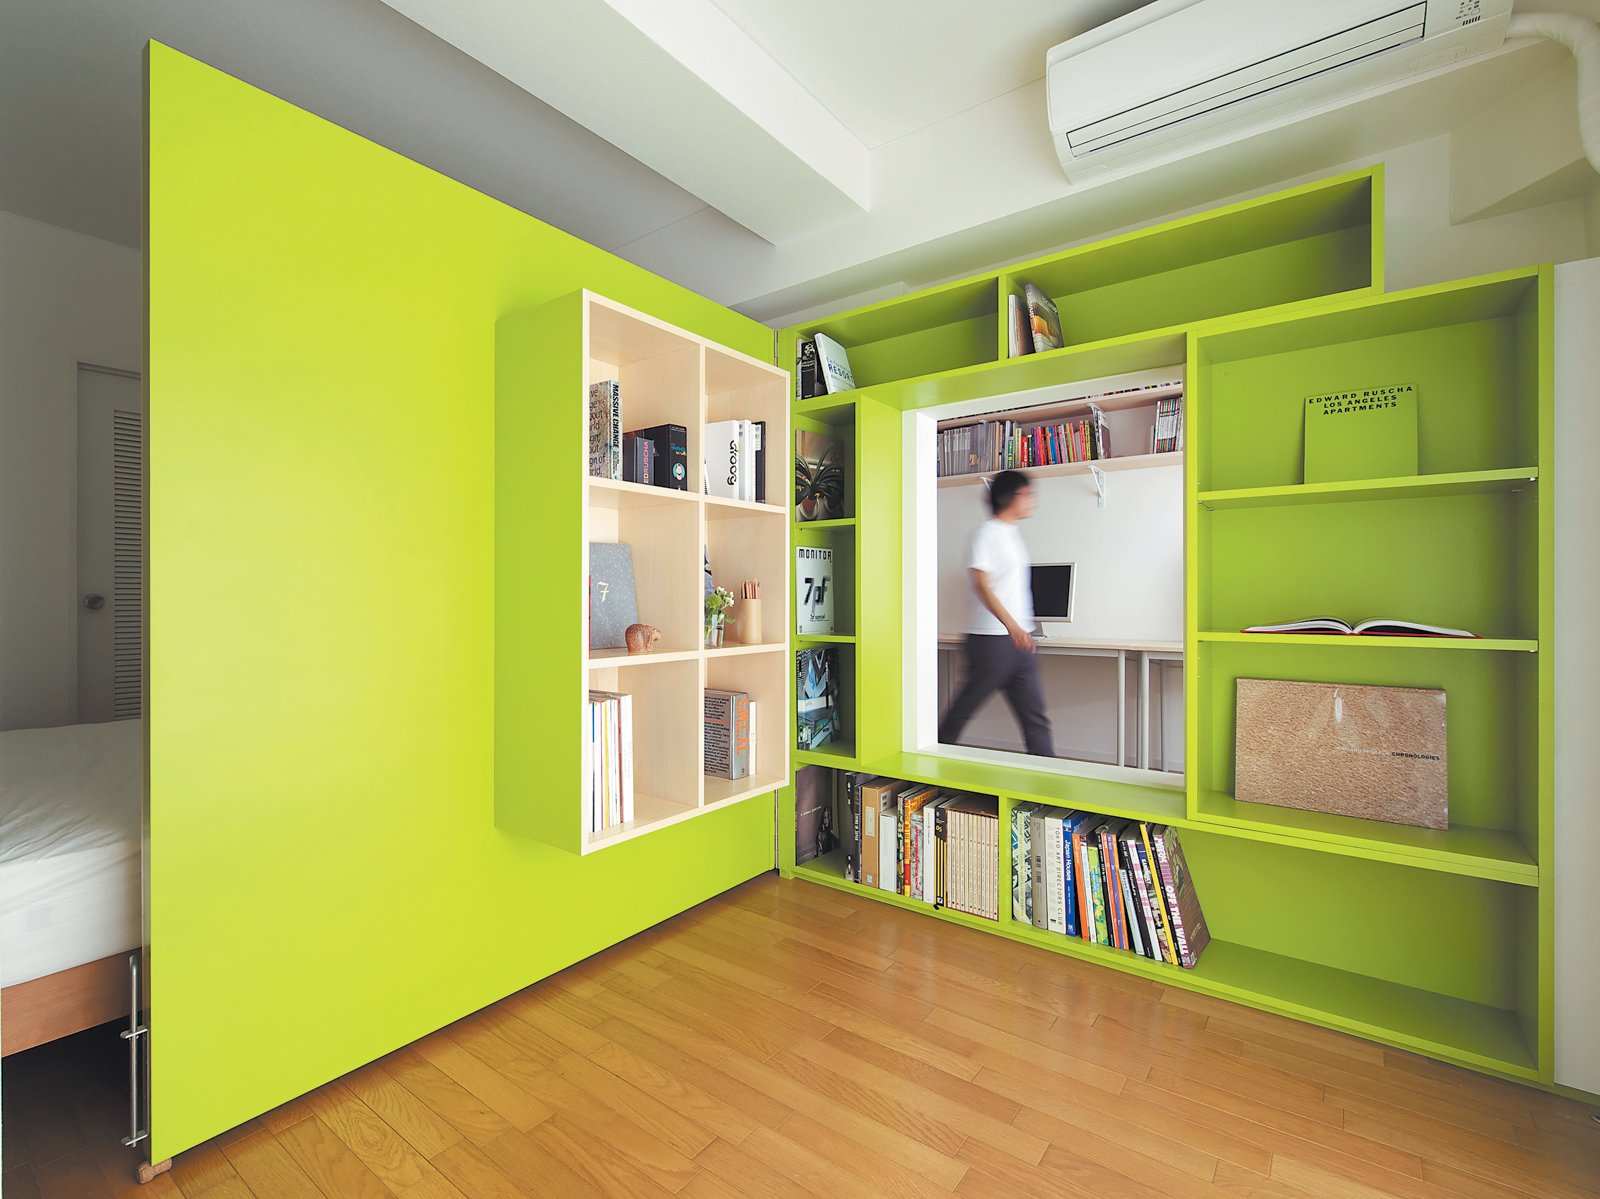 Shibata wanted more shelf space in her home office, so she added a plywood door with built-in bookshelves that opens into her bedroom to form a reading nook. Glimpsed from the adjacent room, the space looks larger than it actually is, thanks to the bright green walls.  Home Offices and Workspaces We Love from This Shape-Shifting Apartment Lets an Architect Work from Home